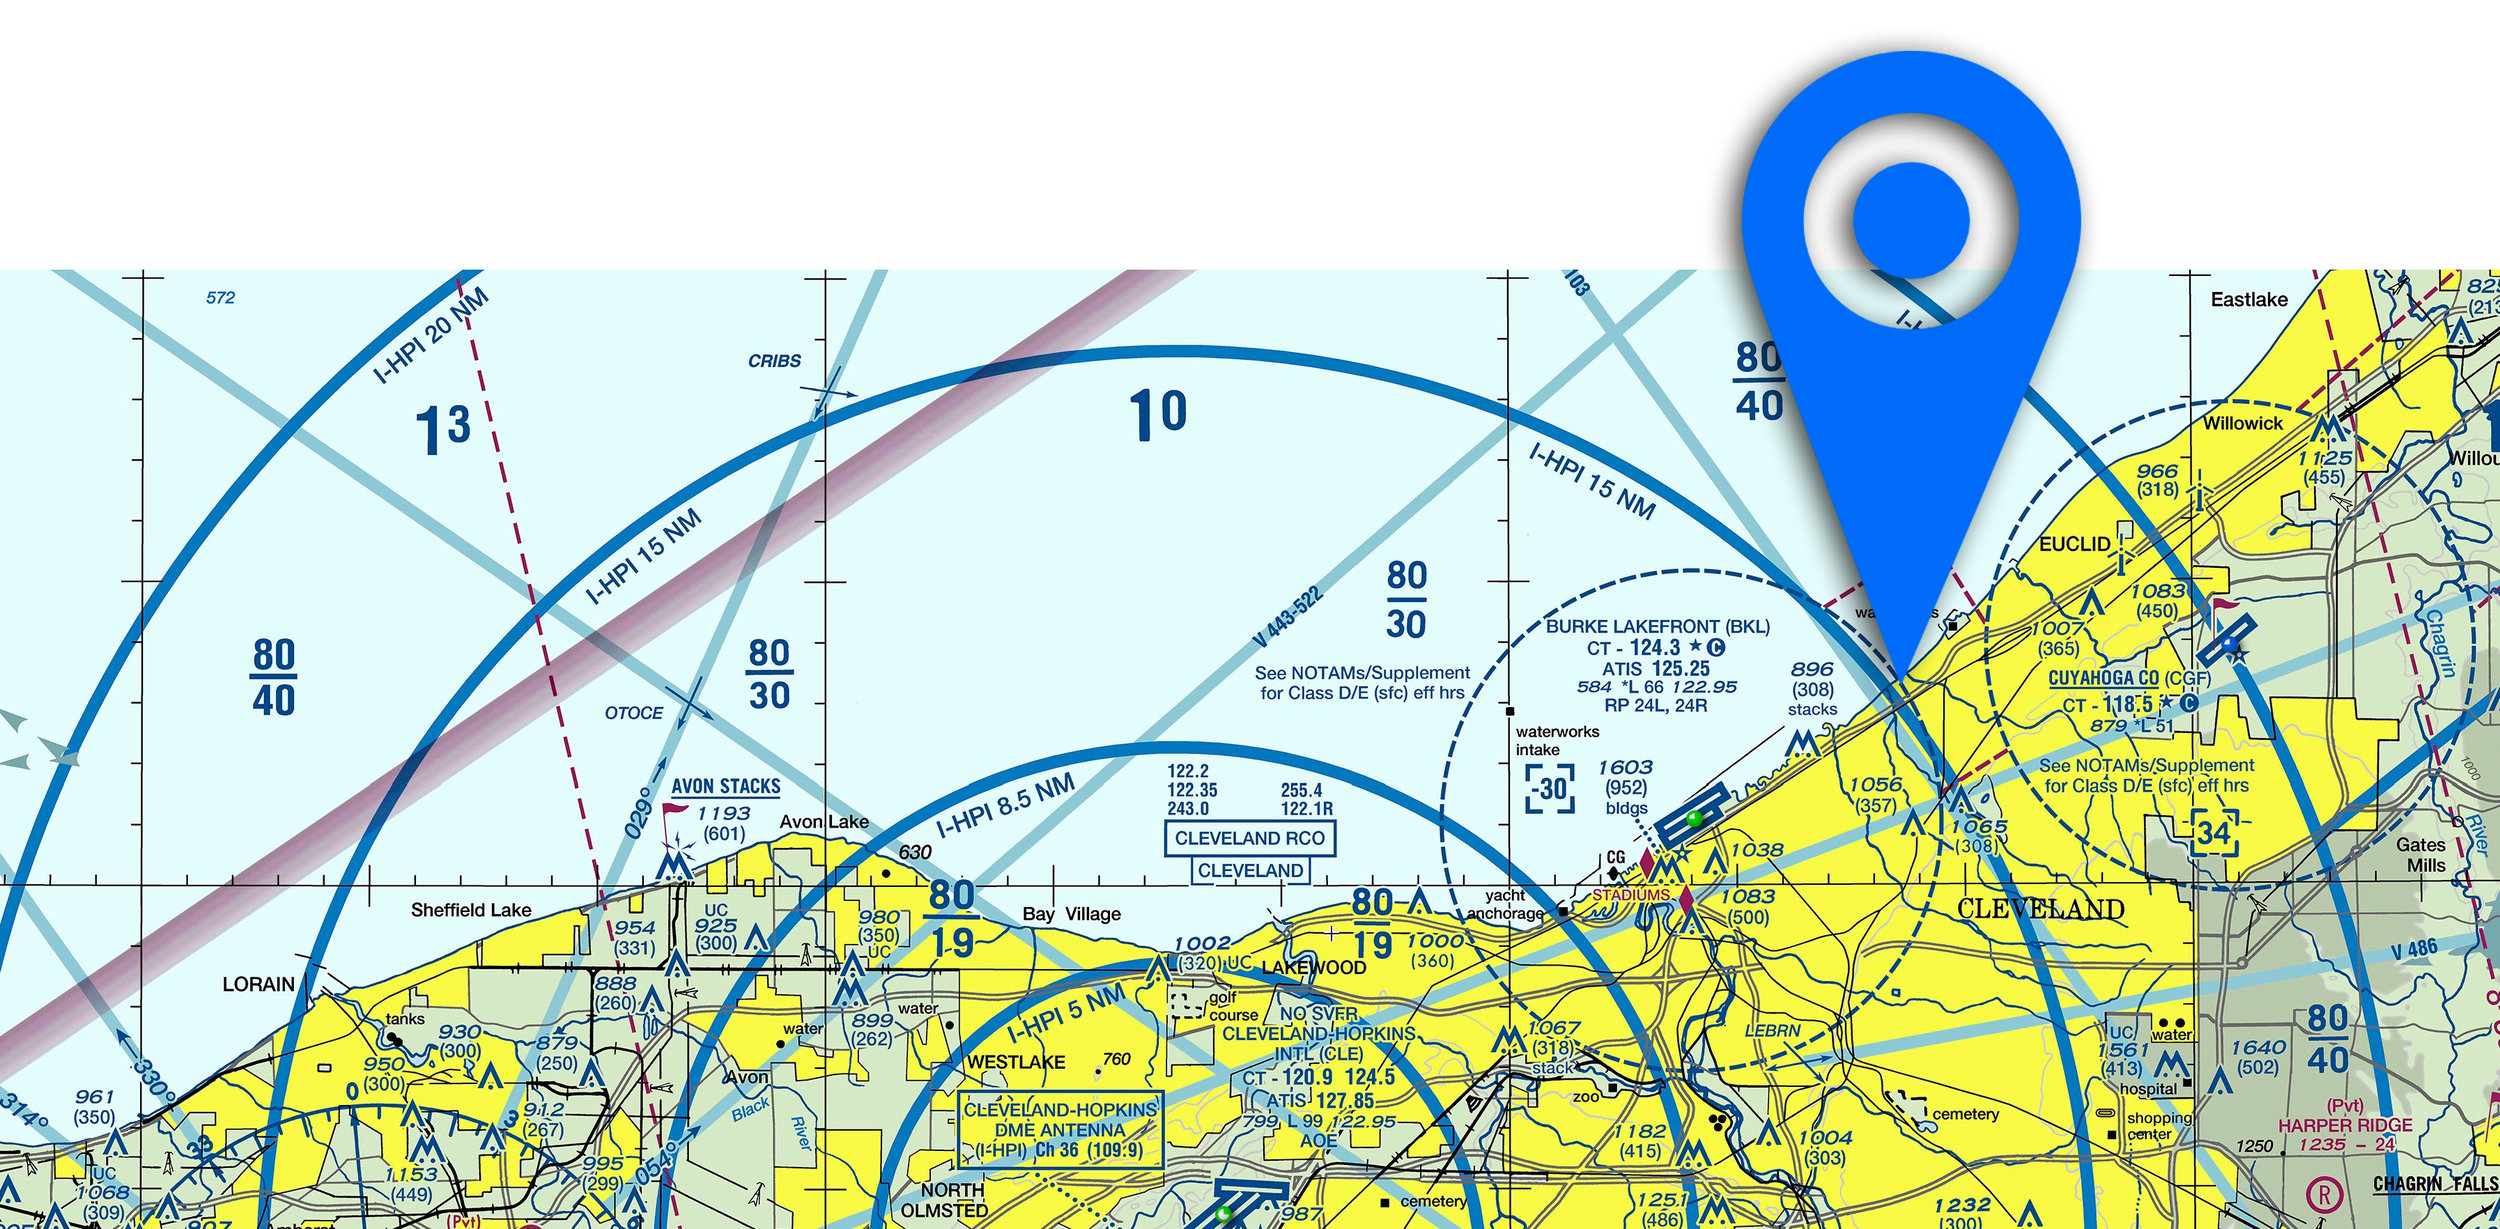 100% zoomed VFR sectional chart of CLE, with a pin at our shoot location.